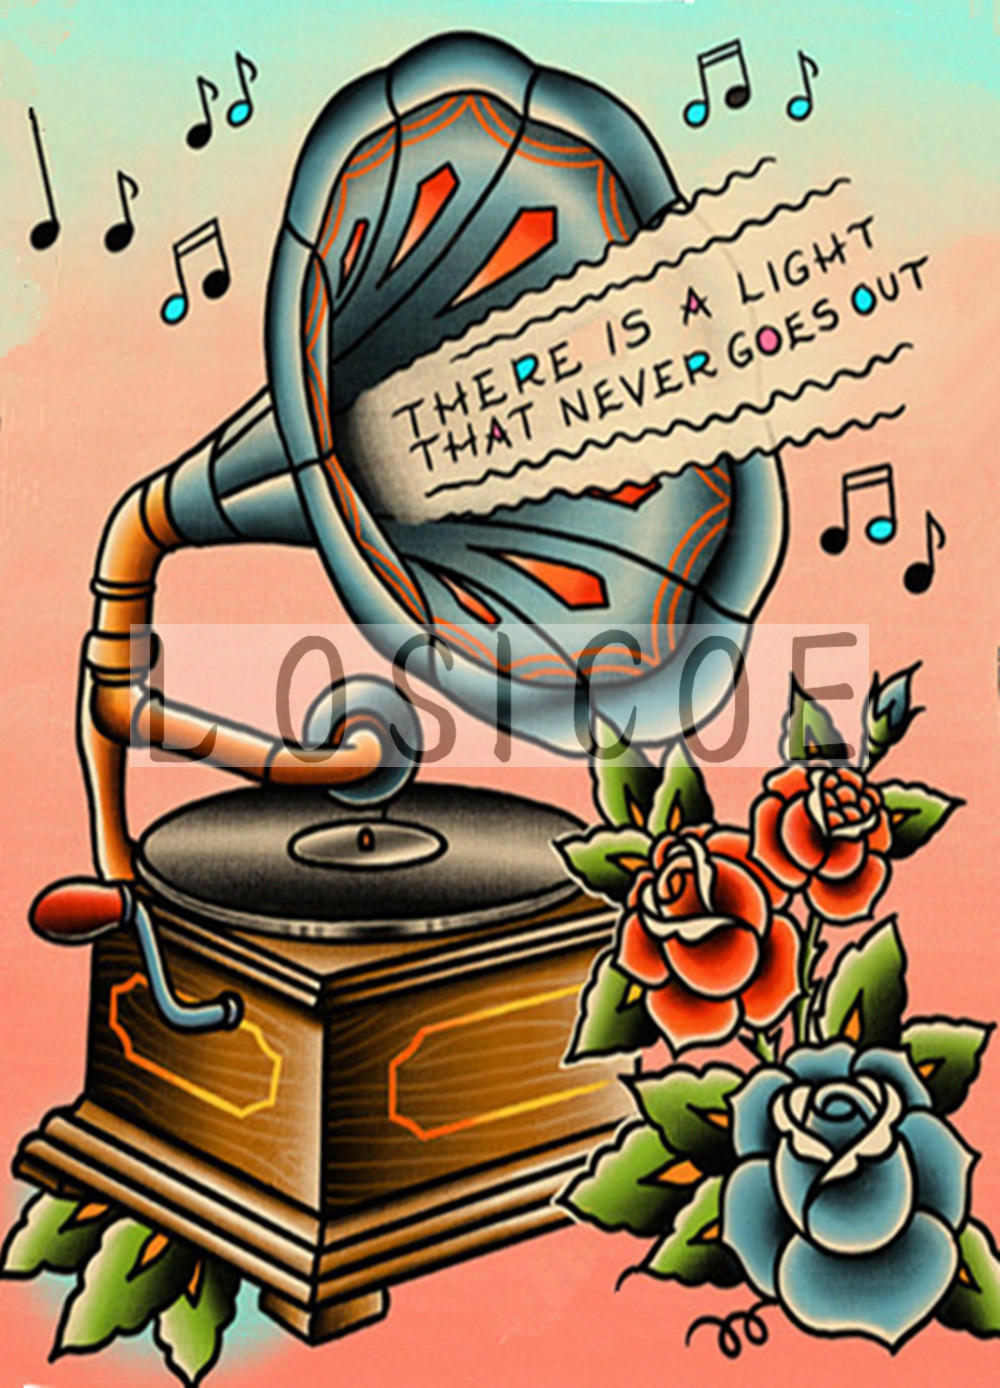 THE RE IS A LIGHT THAT NEVER GOESOUT vintage tattoos pattern kraft paper poster wall sticker print painting barber shop decor